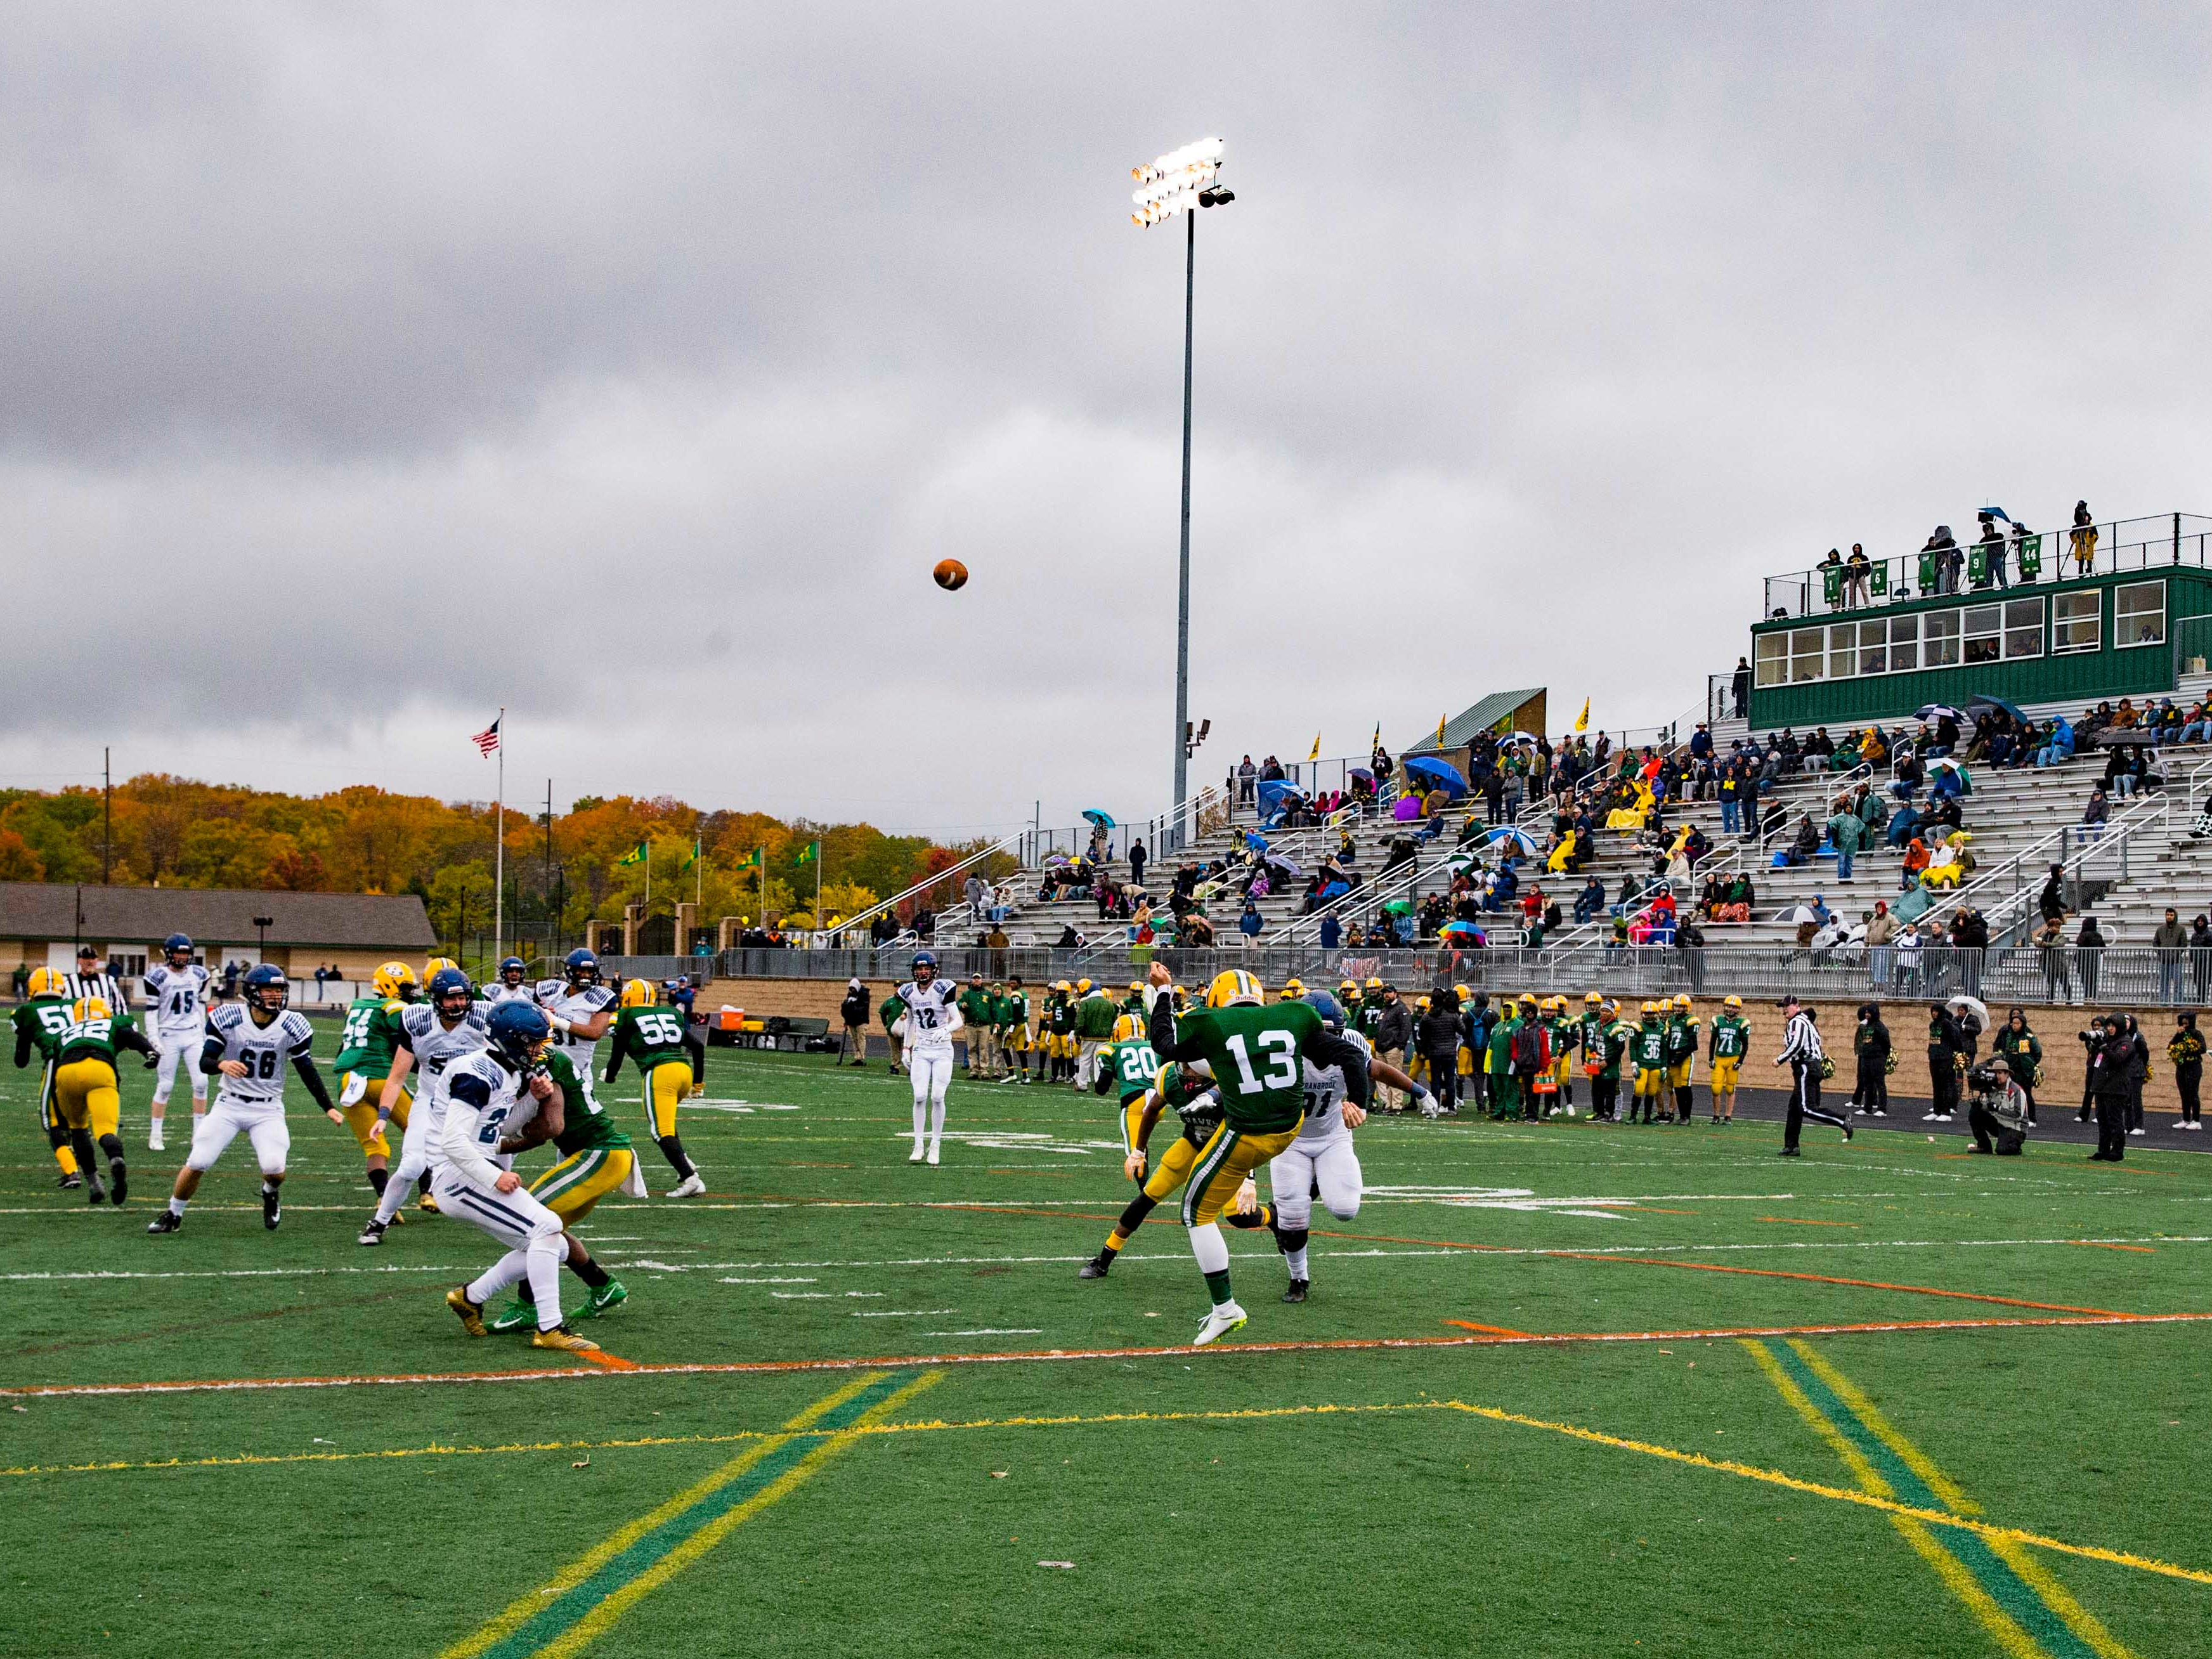 David Hiser (13) of Farmington Hills Harrison punts the ball in the first half against Cranbrook Kingswood.